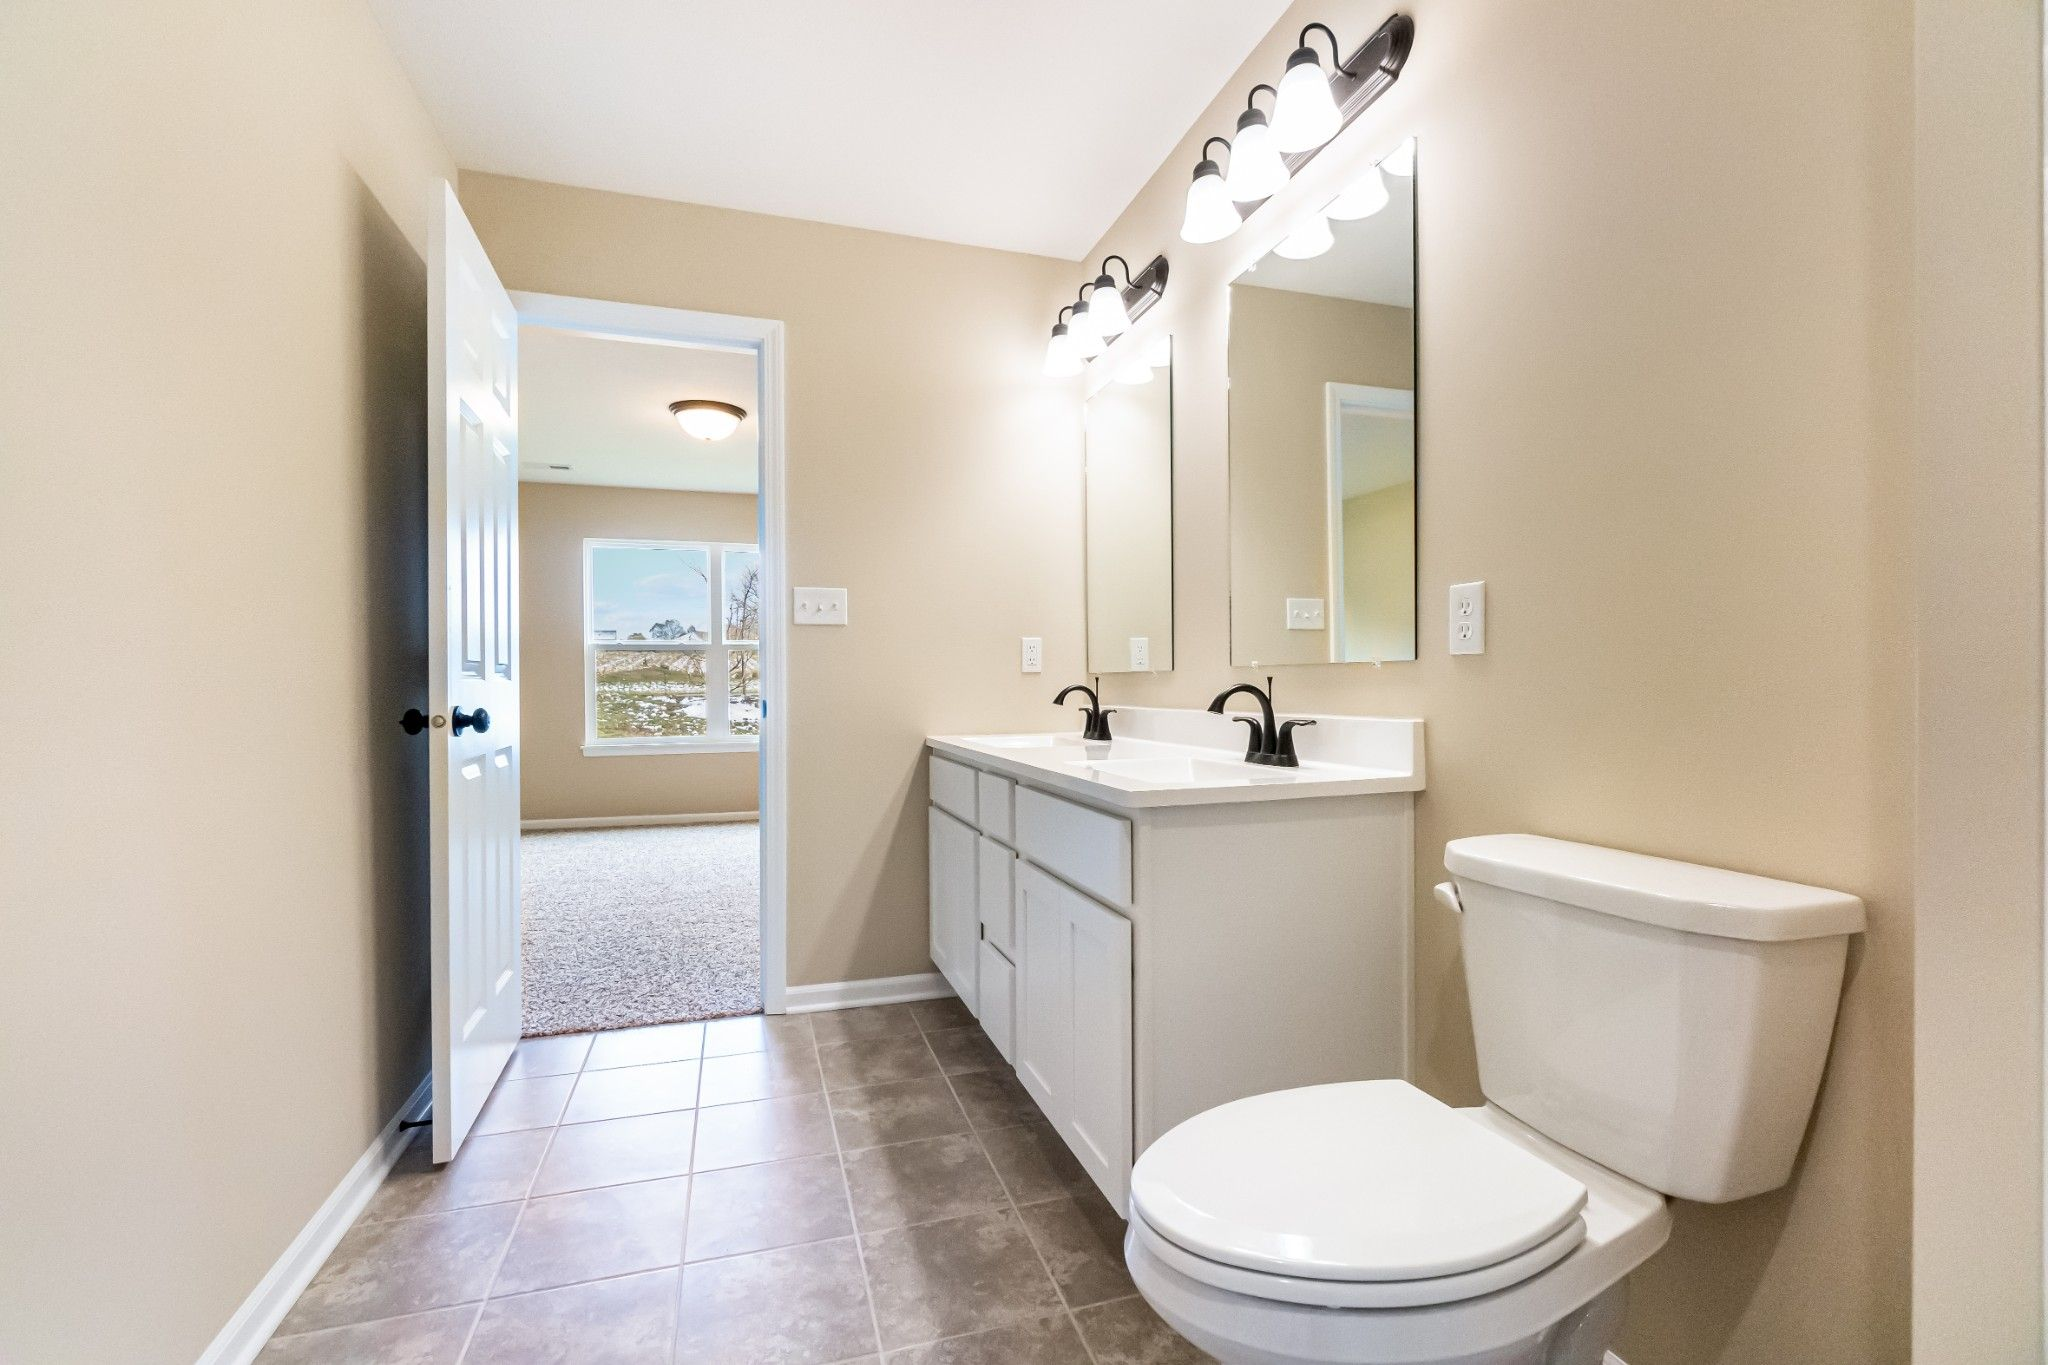 Bathroom featured in the Brighton By Olthof Homes in Gary, IN